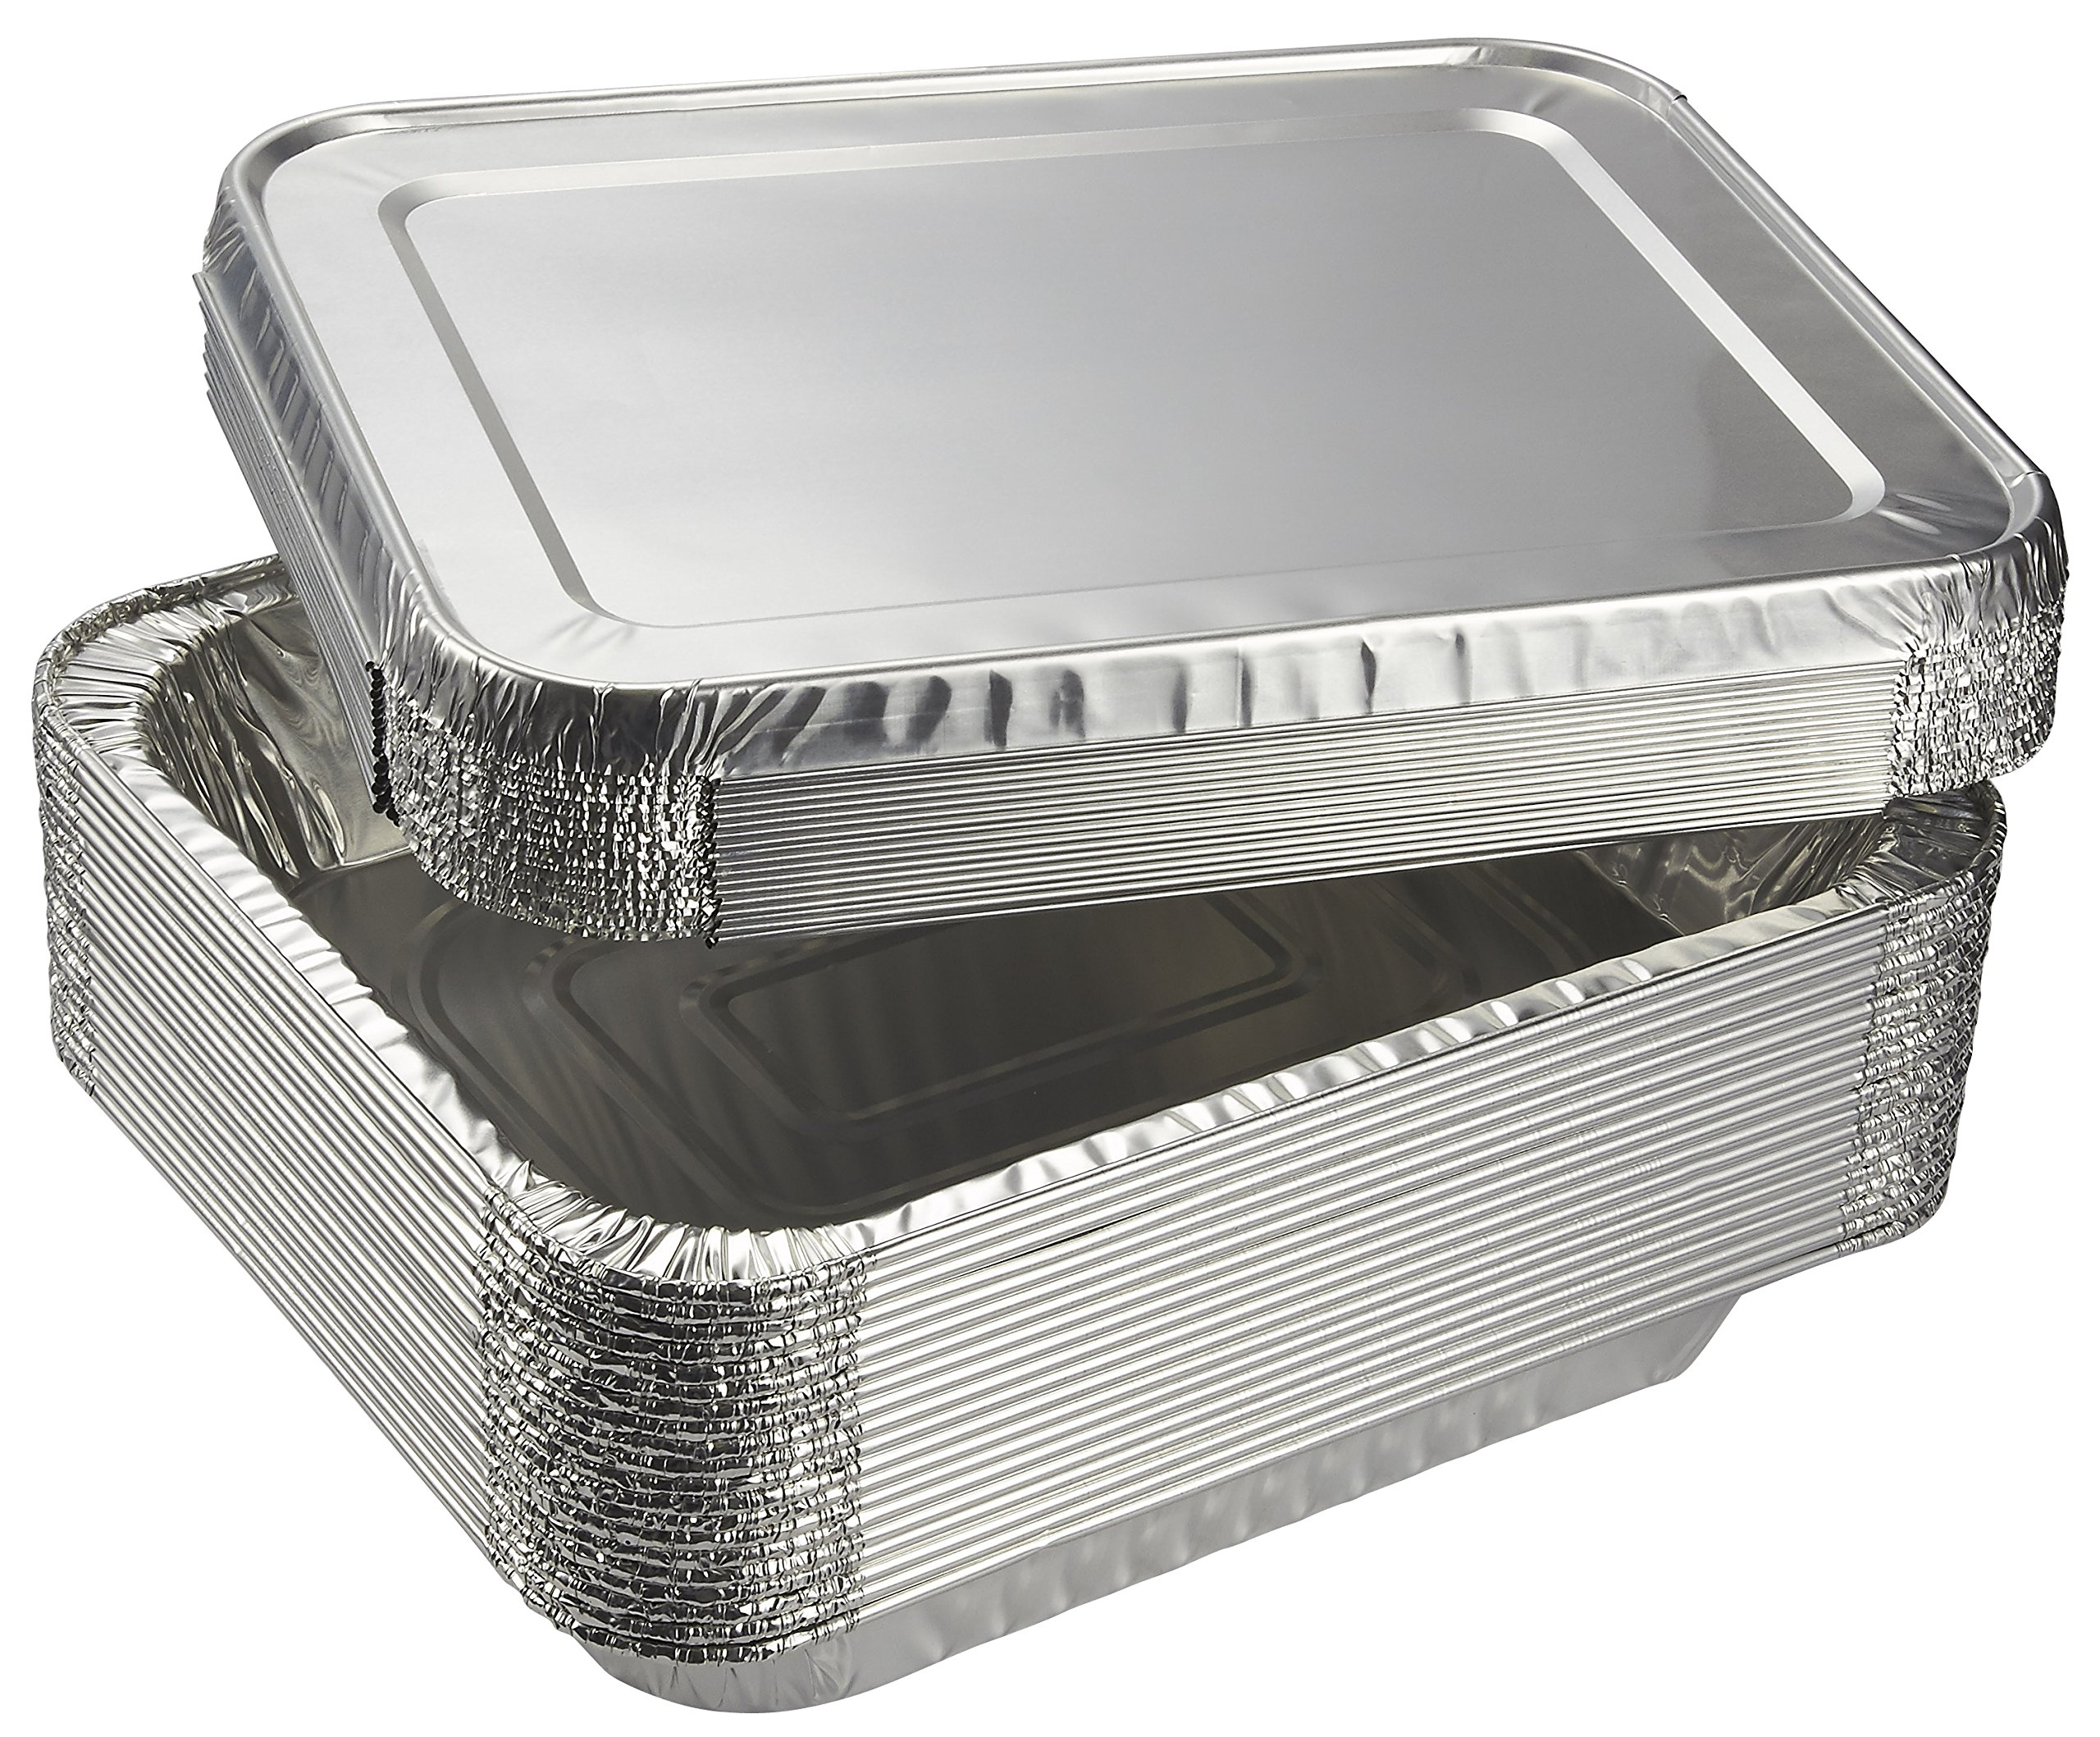 Aluminum Foil Pans - 20-Piece Half-Size Deep Disposable Steam Table Pans with Lids for Baking, Roasting, Broiling, Cooking, 12.75 x 2.25 x 10.25 inches